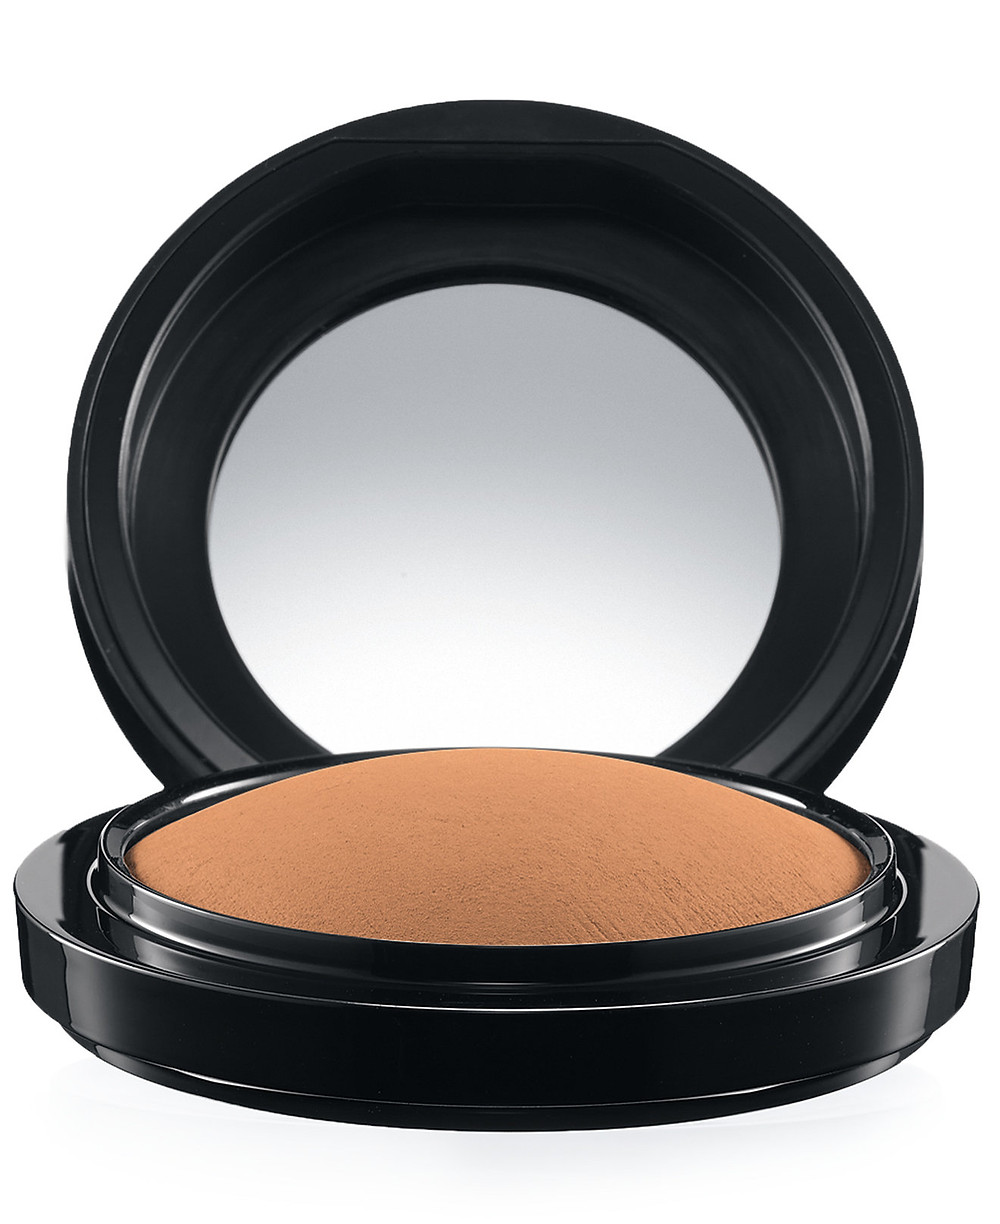 M.A.C Mineralize Skinfinish Natural - New Look w. Mirror